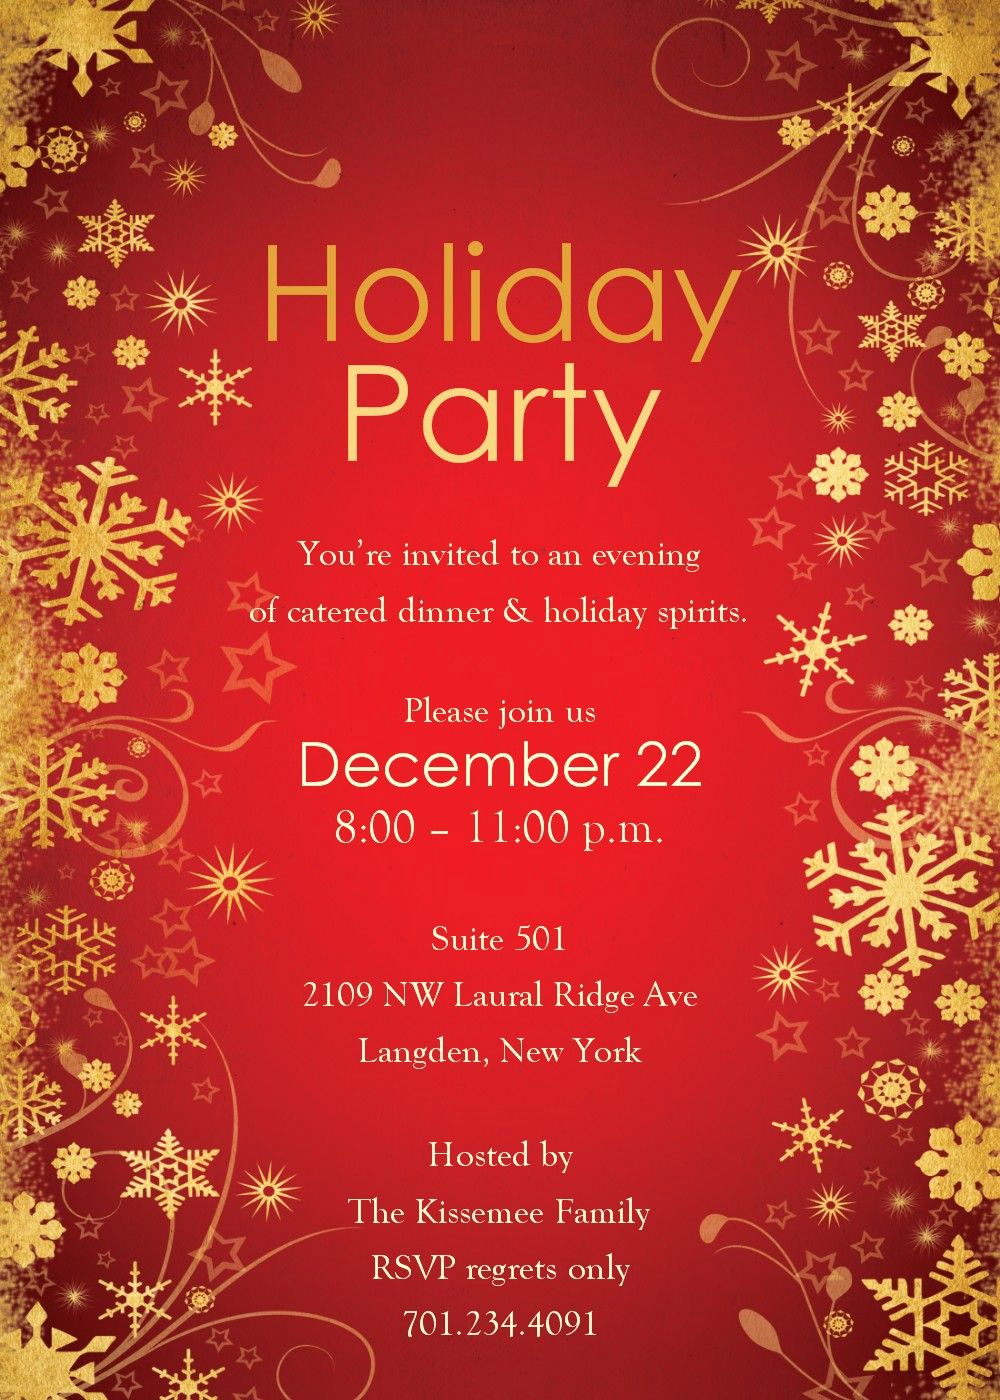 Free Christmas Party Invitation Templates Awesome Free Holiday Party Invitation Templates Agqszaoj